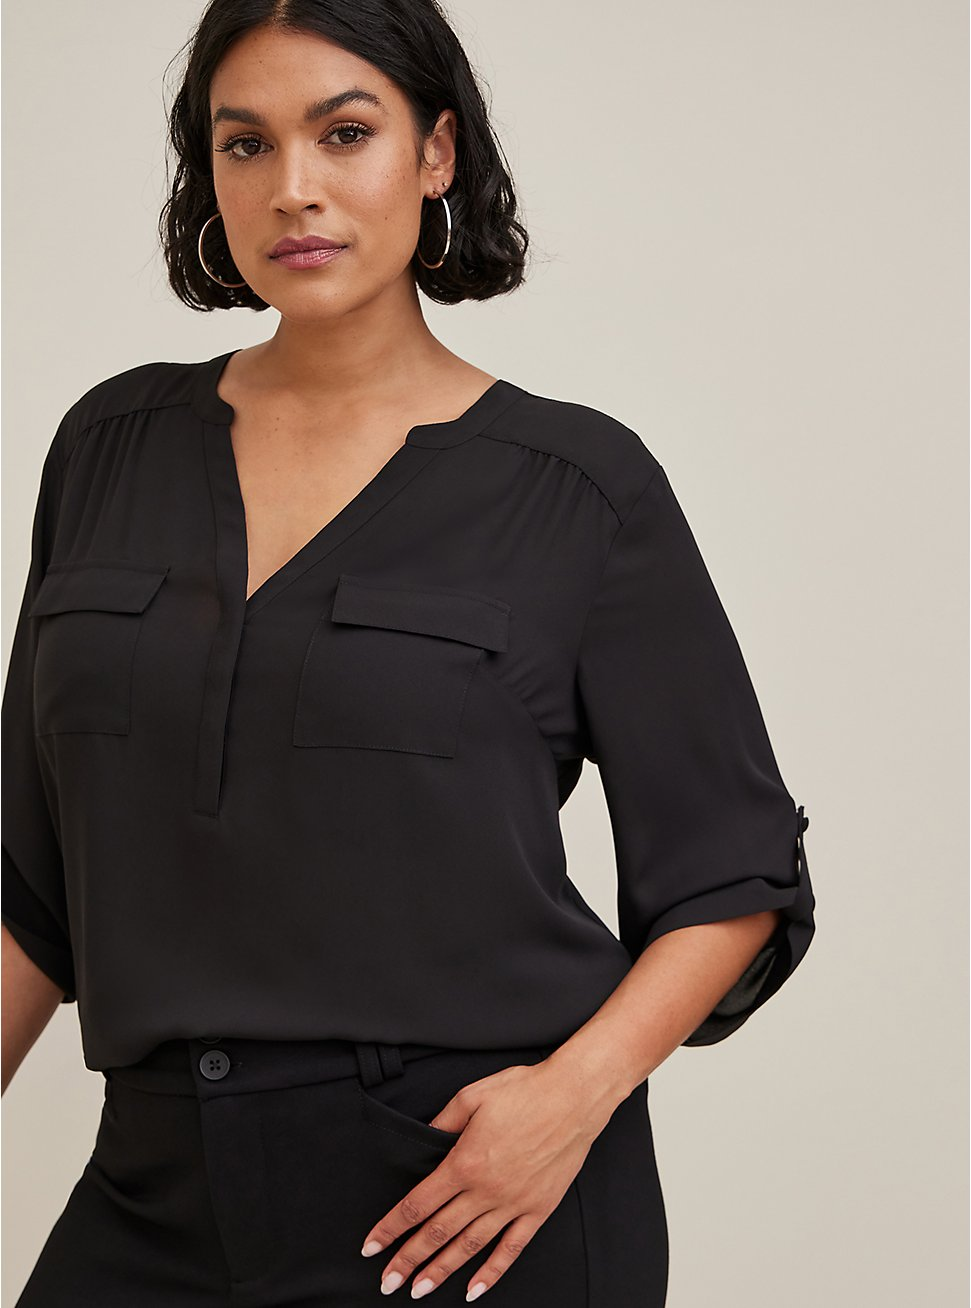 Plus Size Harper - Black Georgette Pullover Blouse, , hi-res